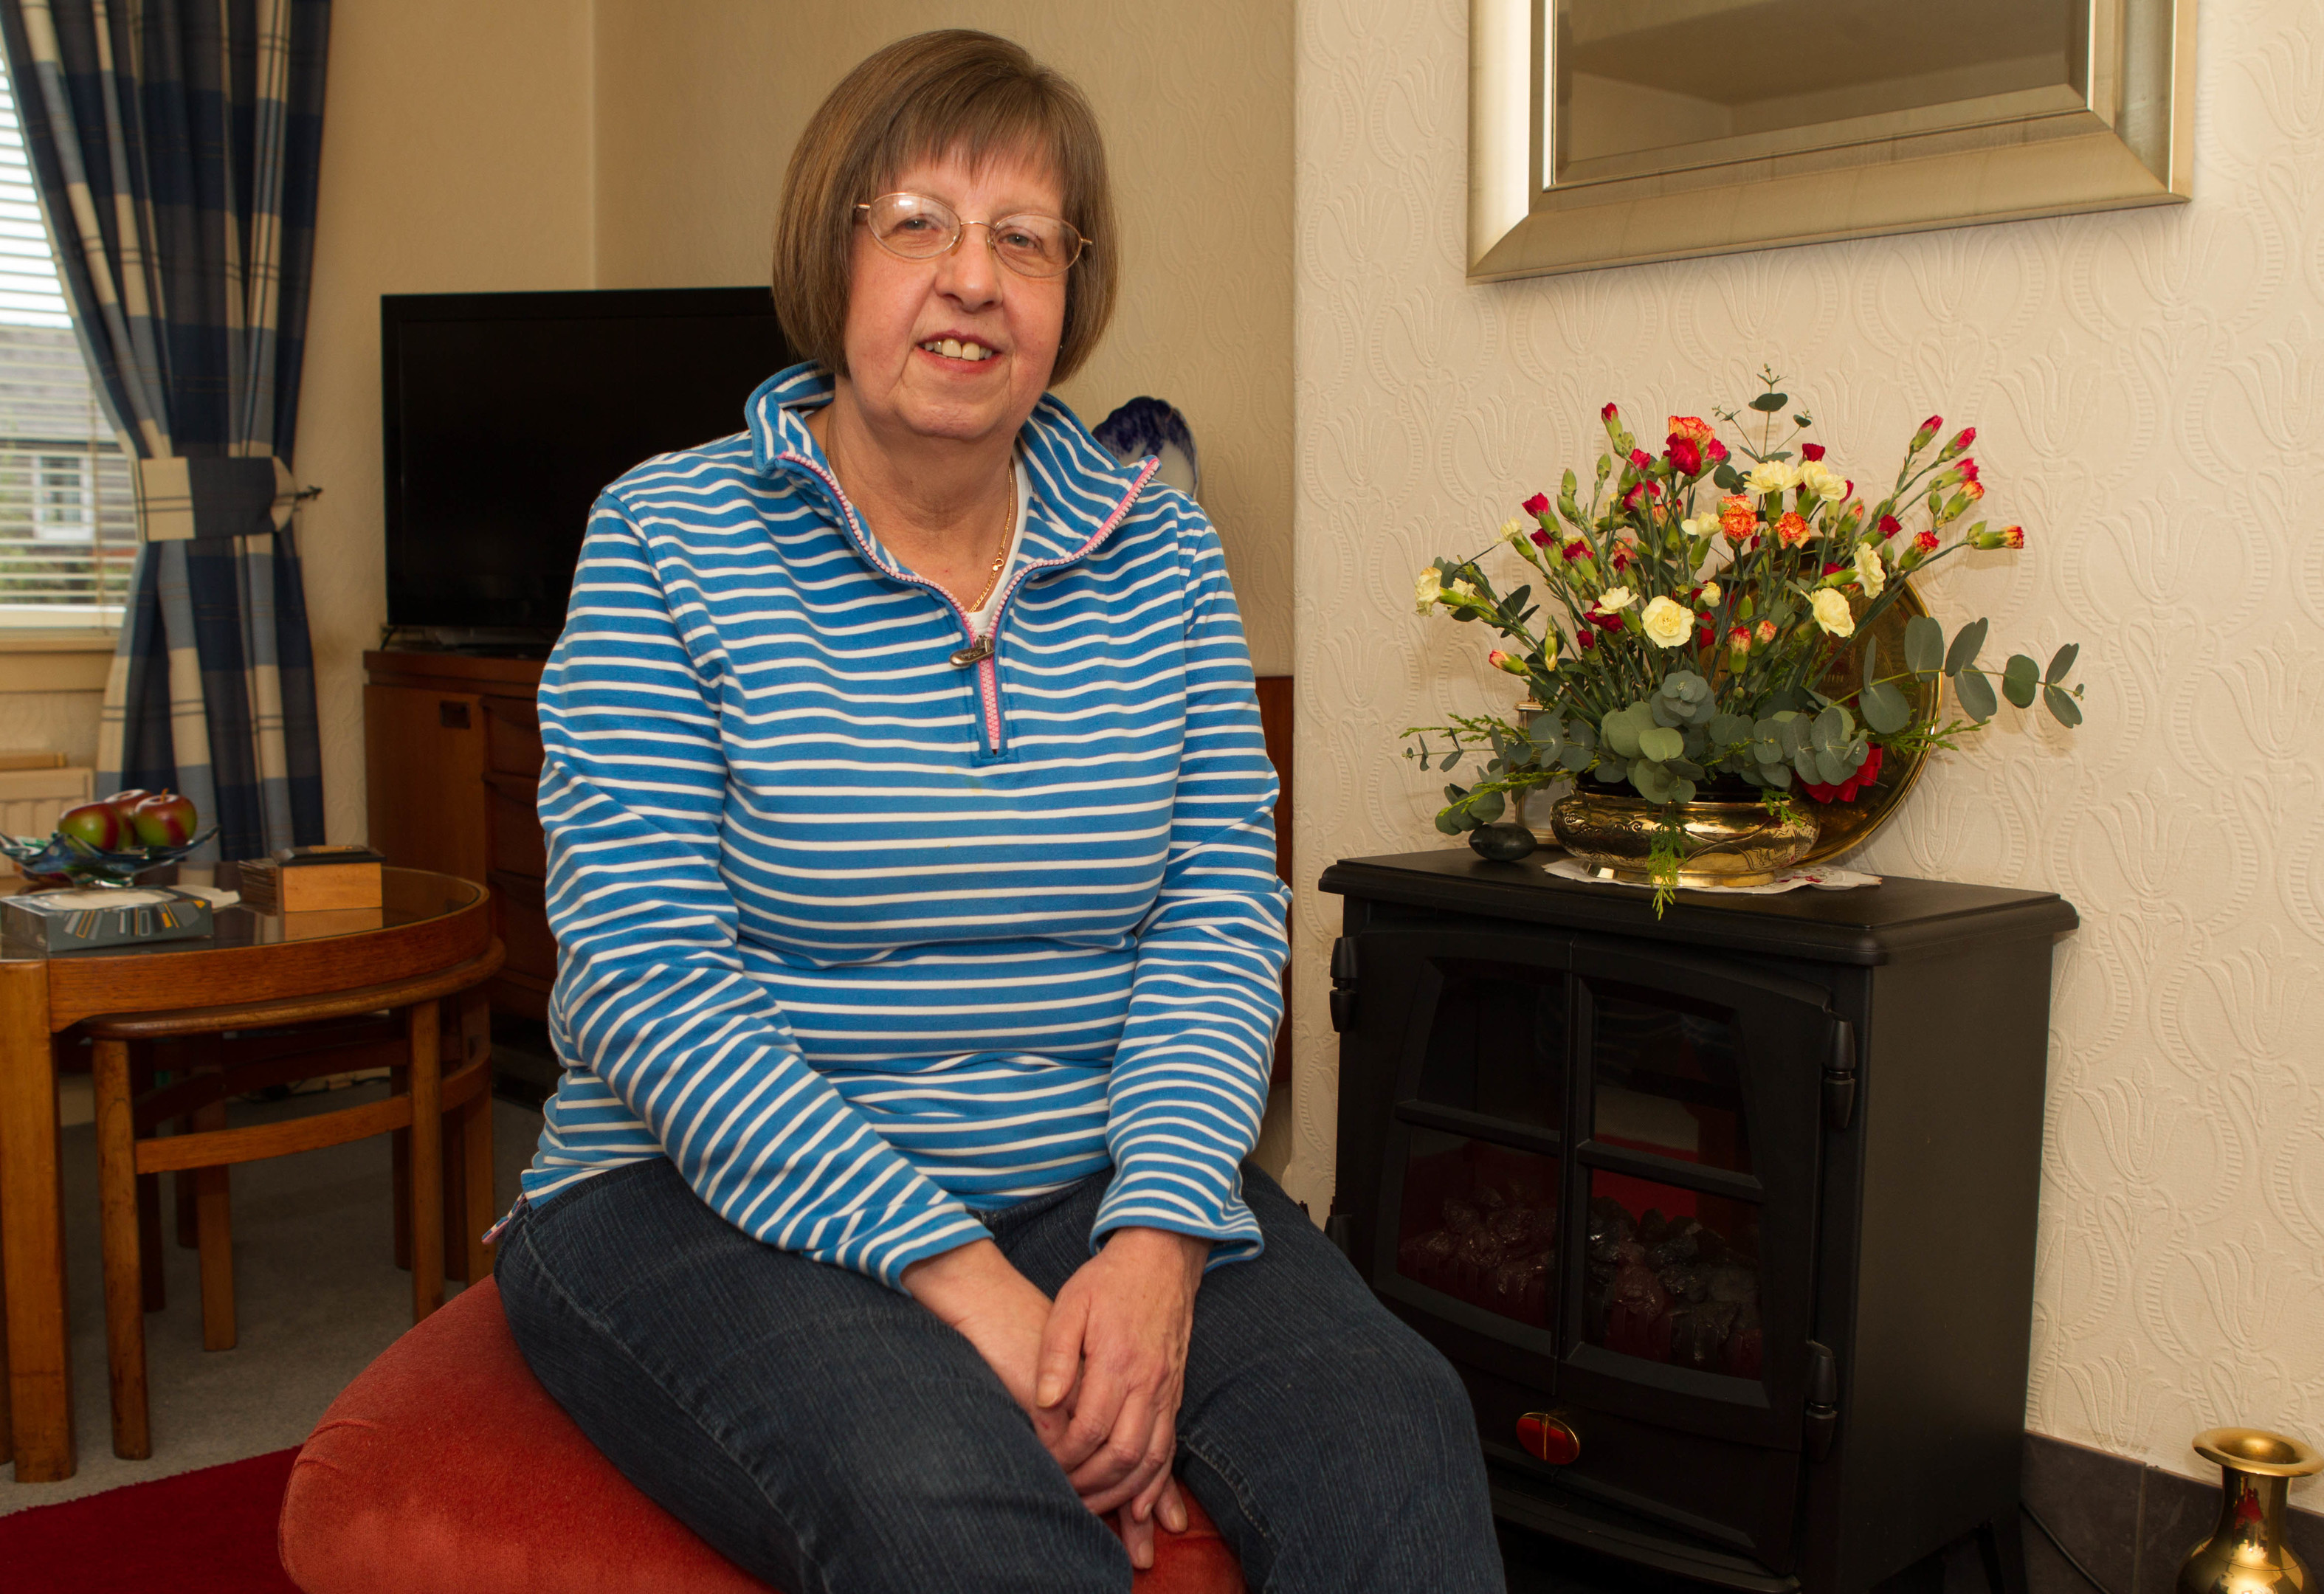 Alison Webster suffers from CRPS - chronic pain (Chris Austin / DC Thomson)